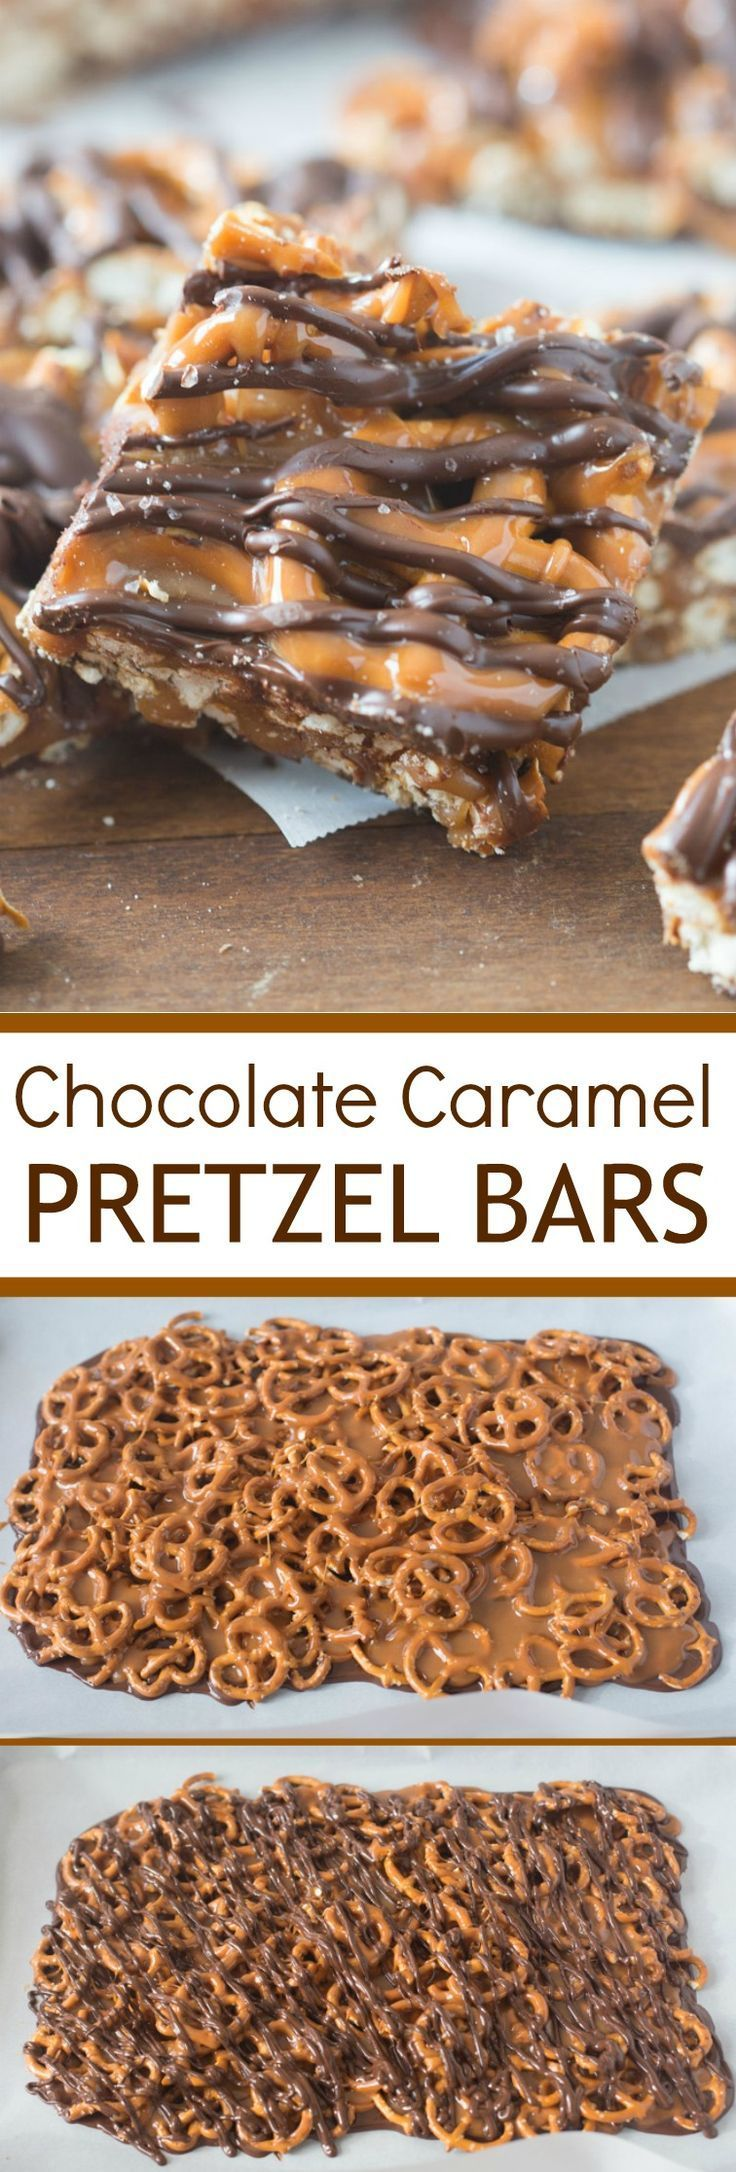 25+ best ideas about Pretzel cookies on Pinterest ...